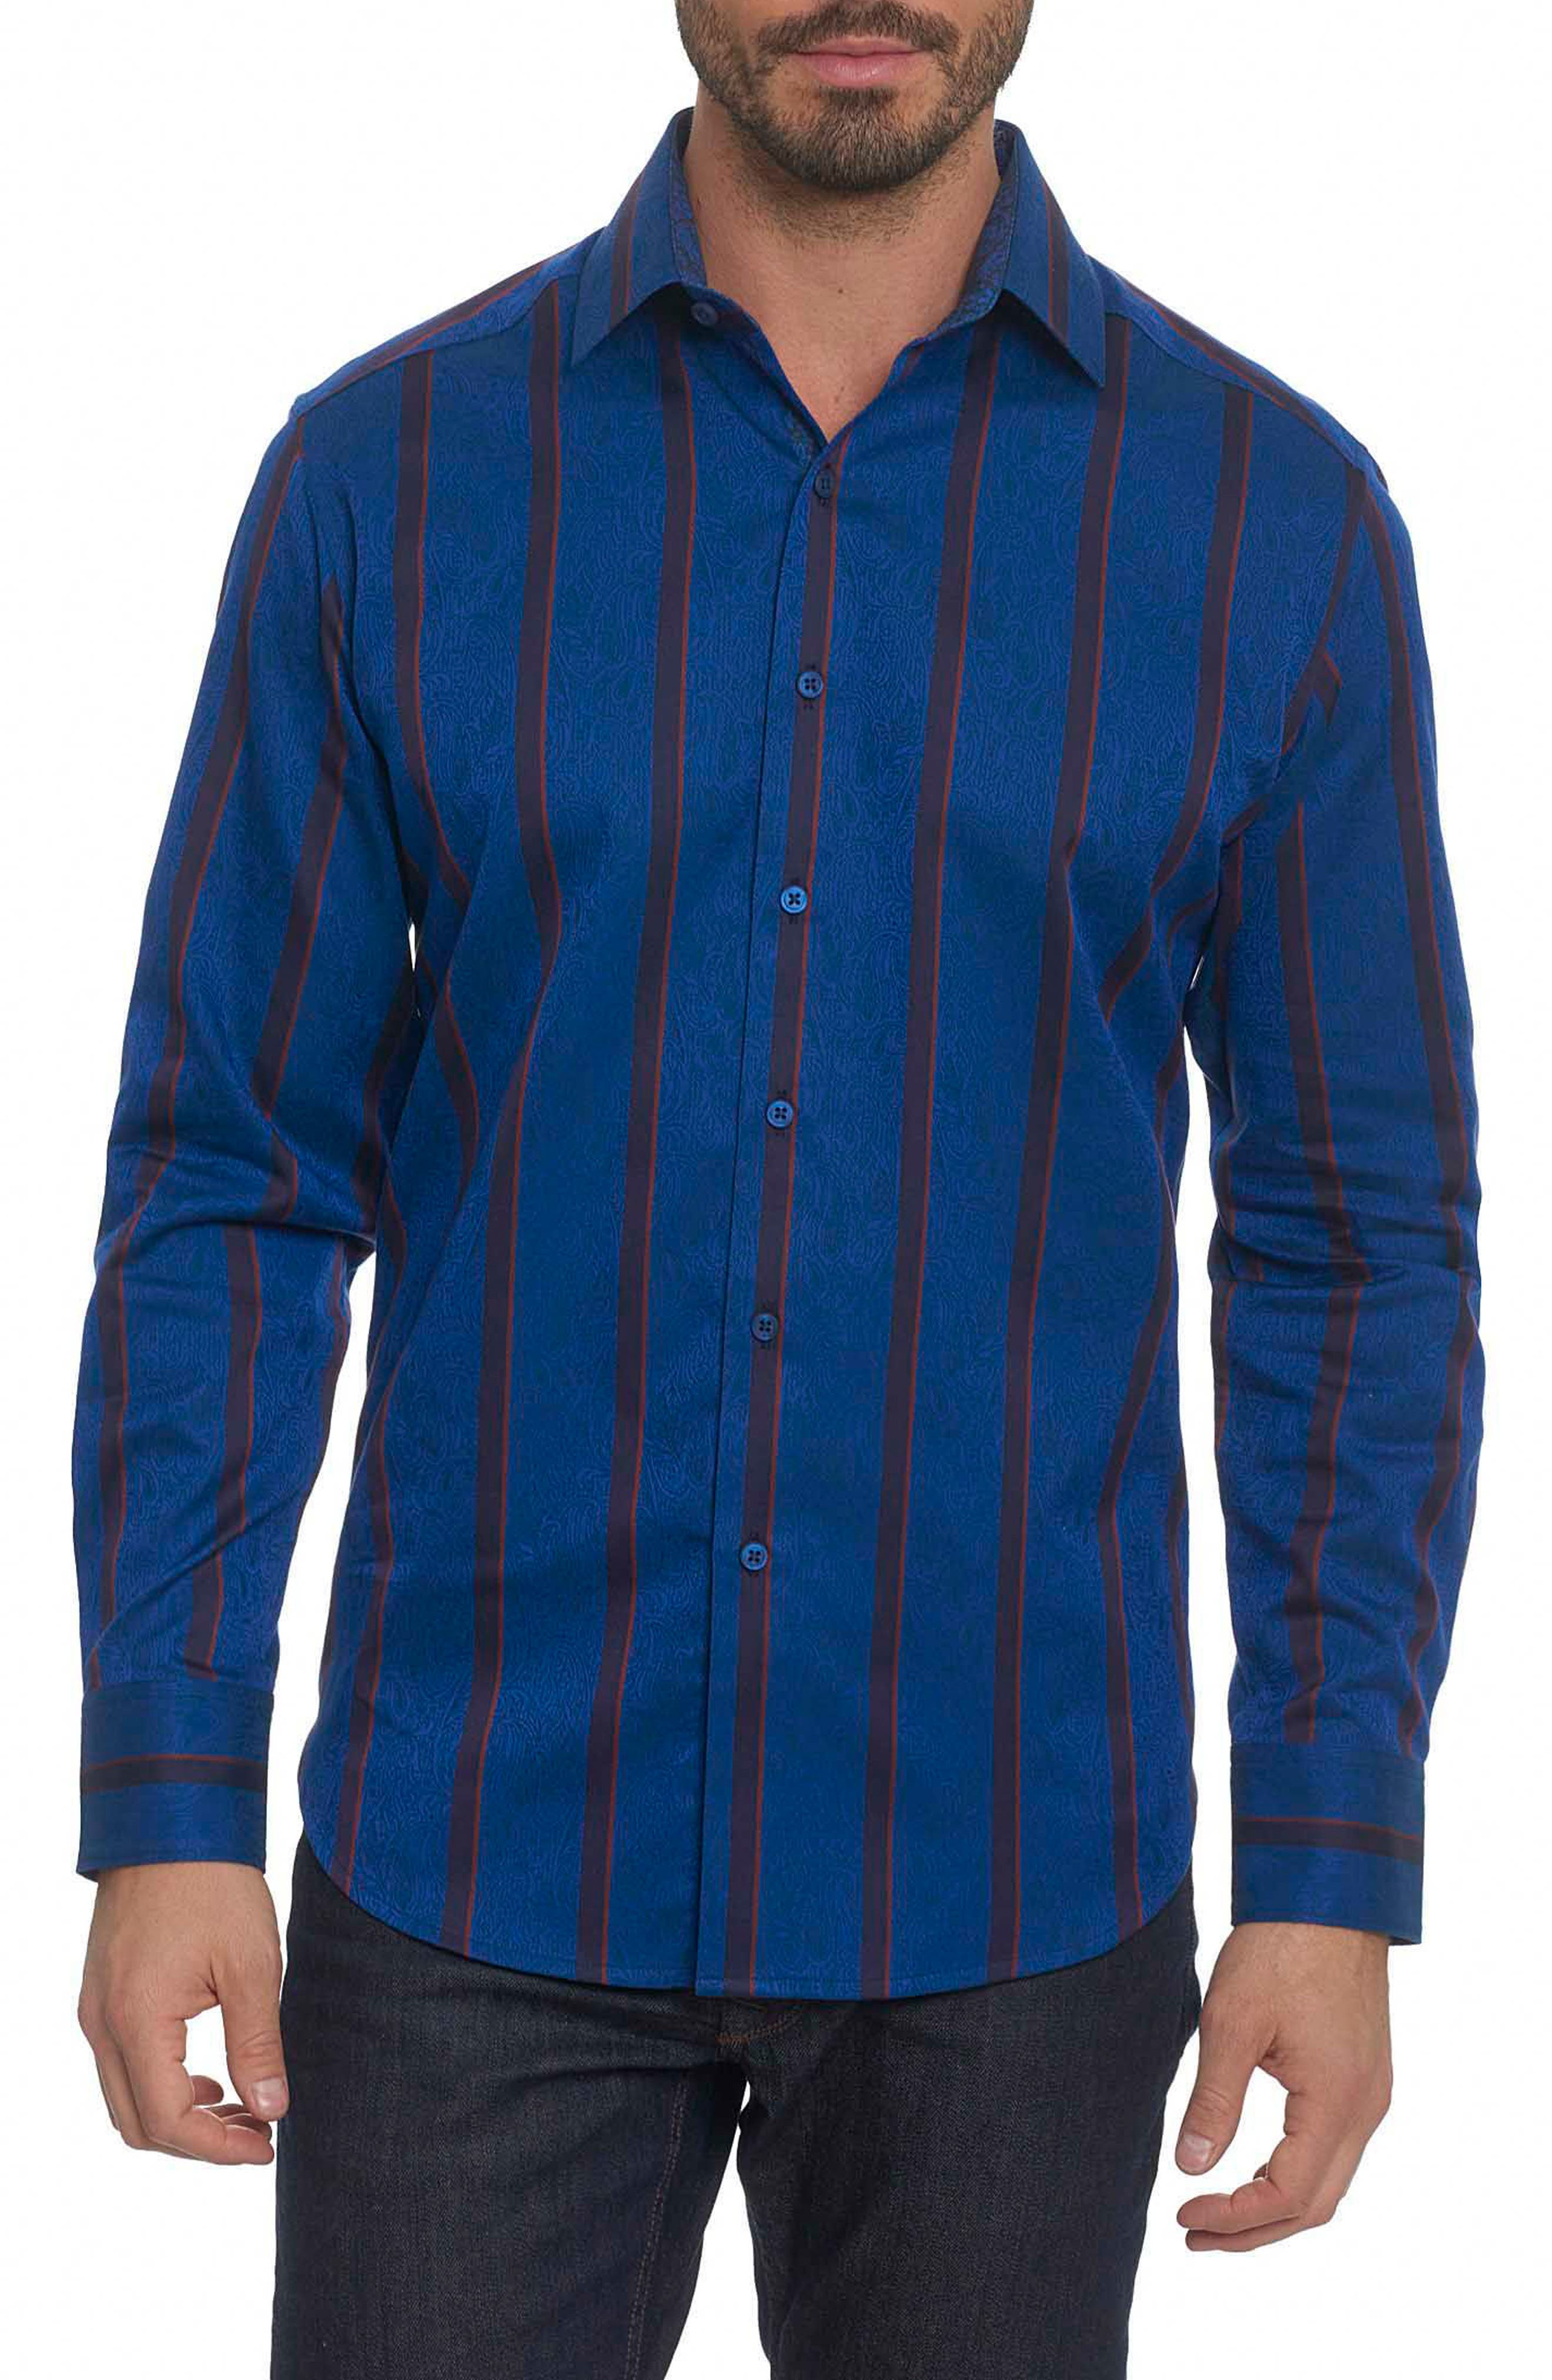 Granby Classic Fit Stripe Paisley Sport Shirt,                             Main thumbnail 1, color,                             432